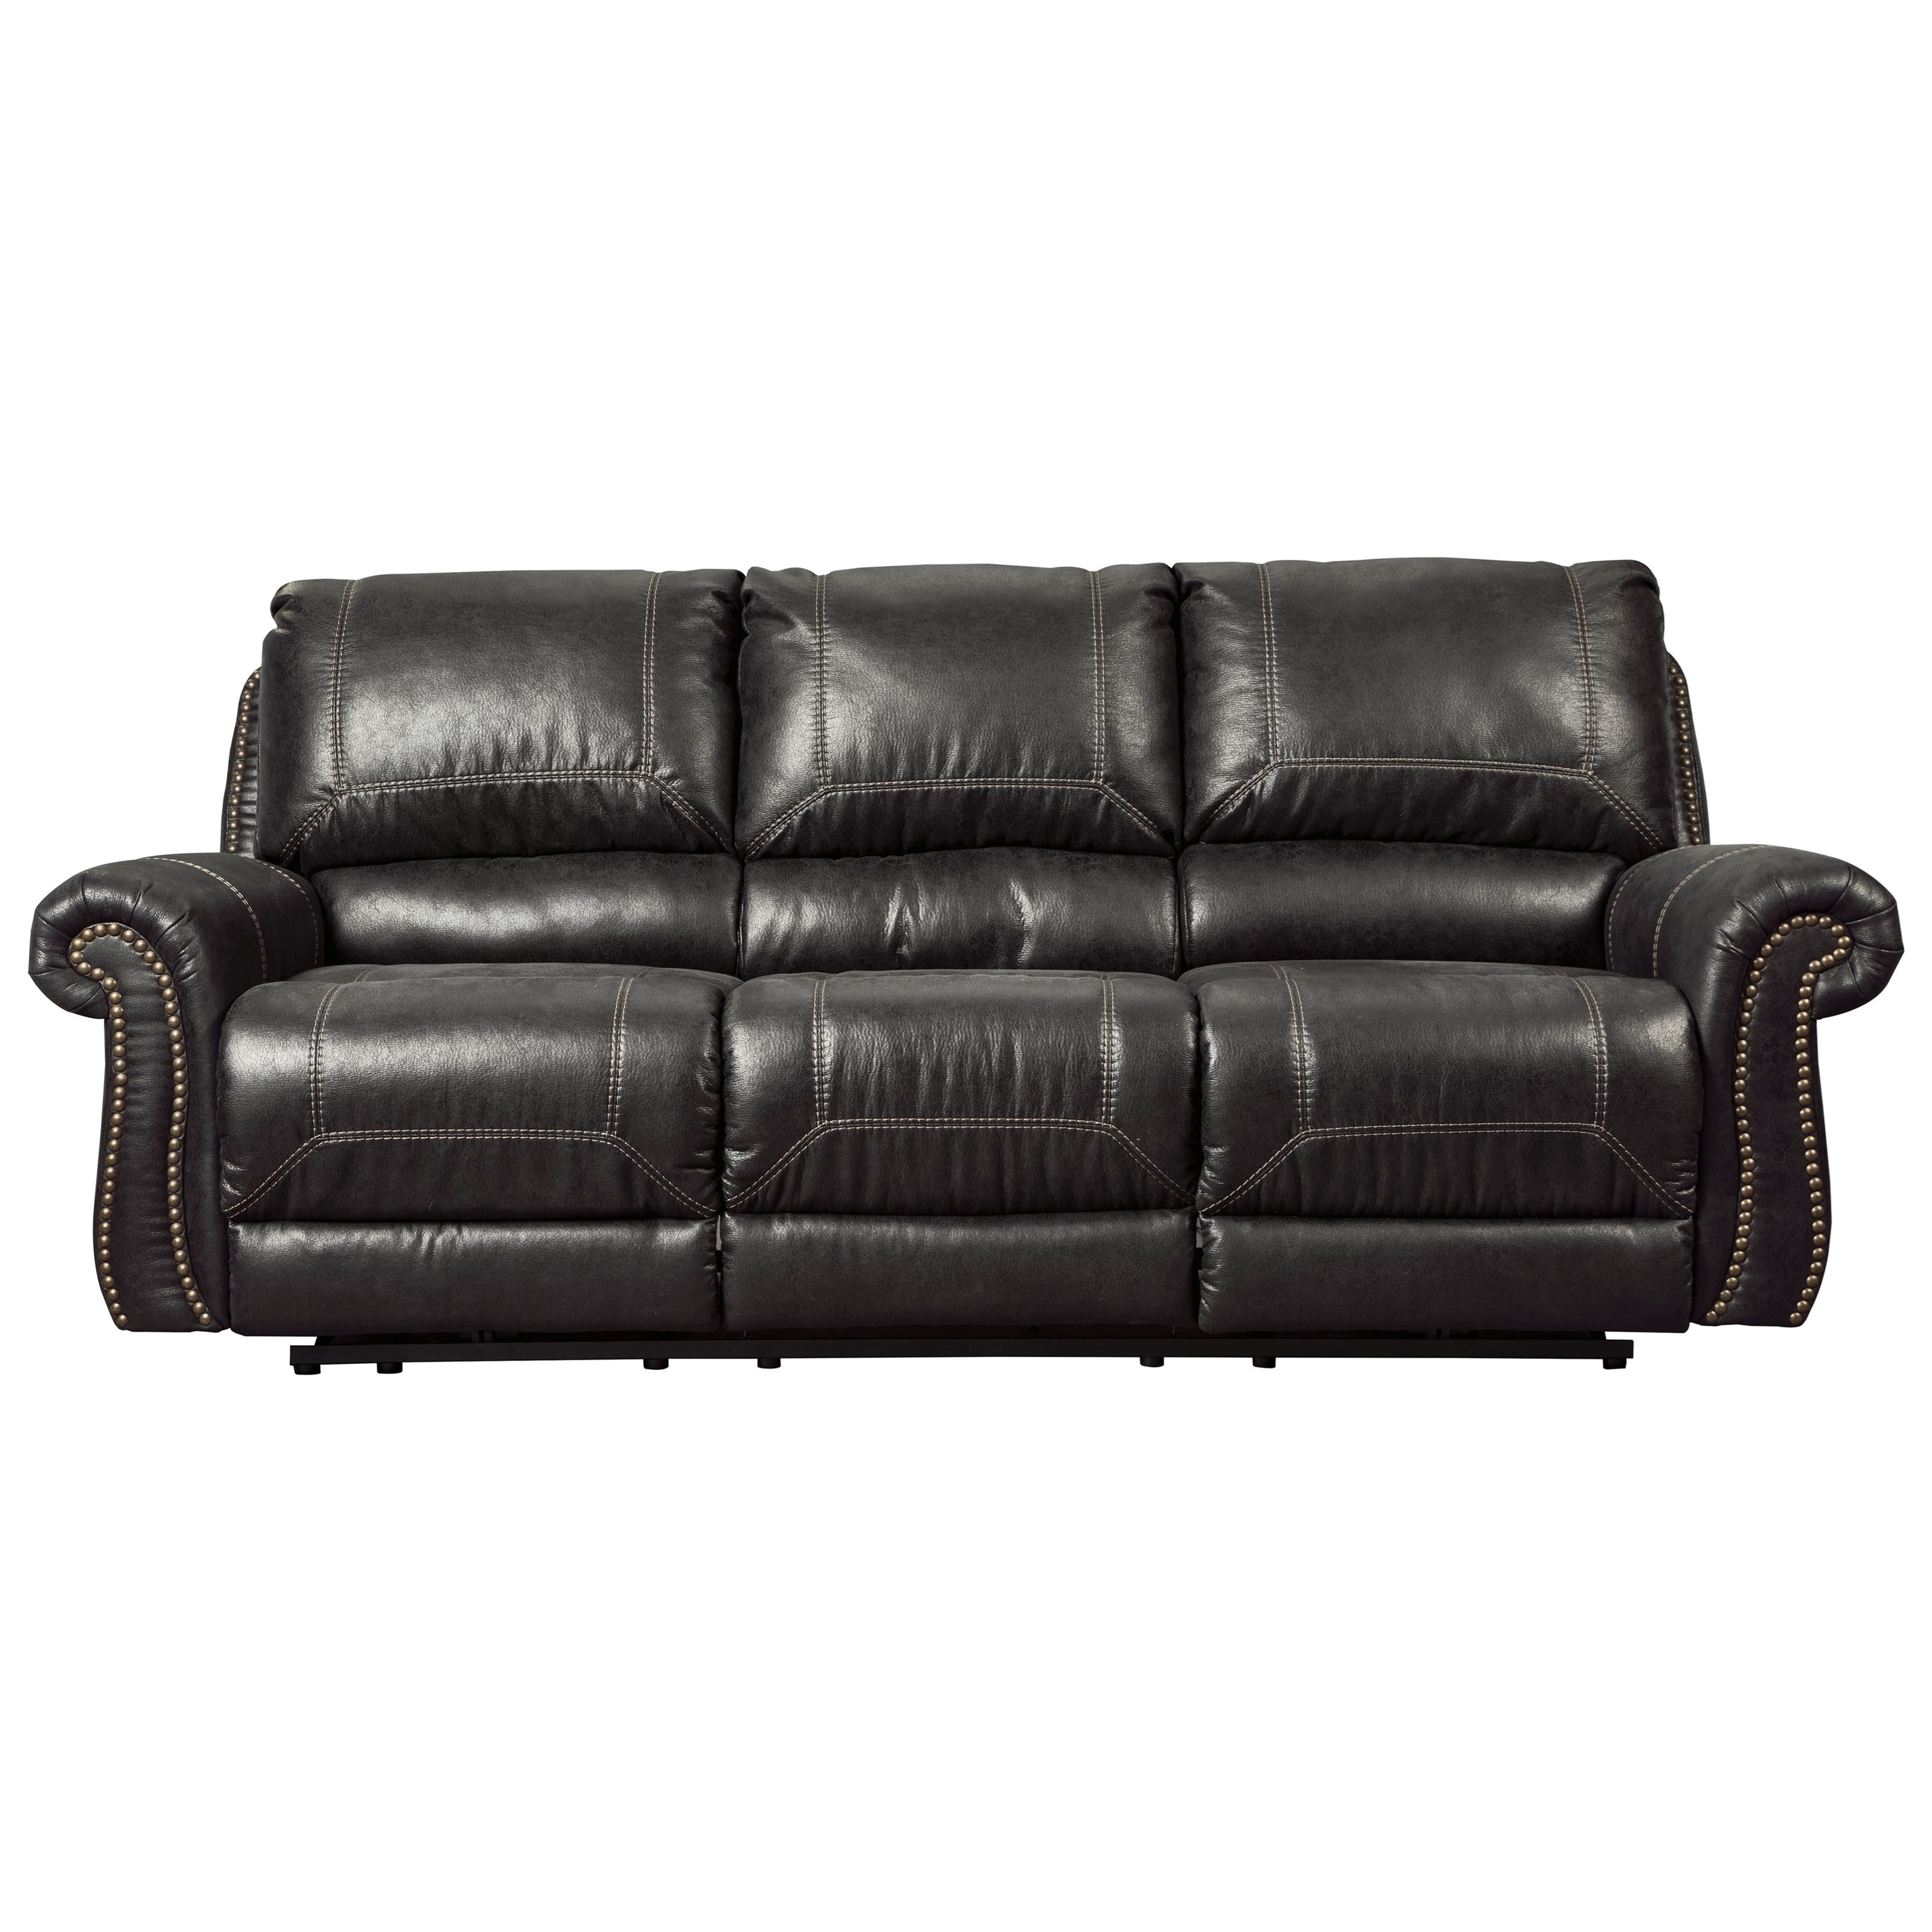 Signature Design by Ashley Milhaven Reclining Power Sofa - Item Number: 6330387